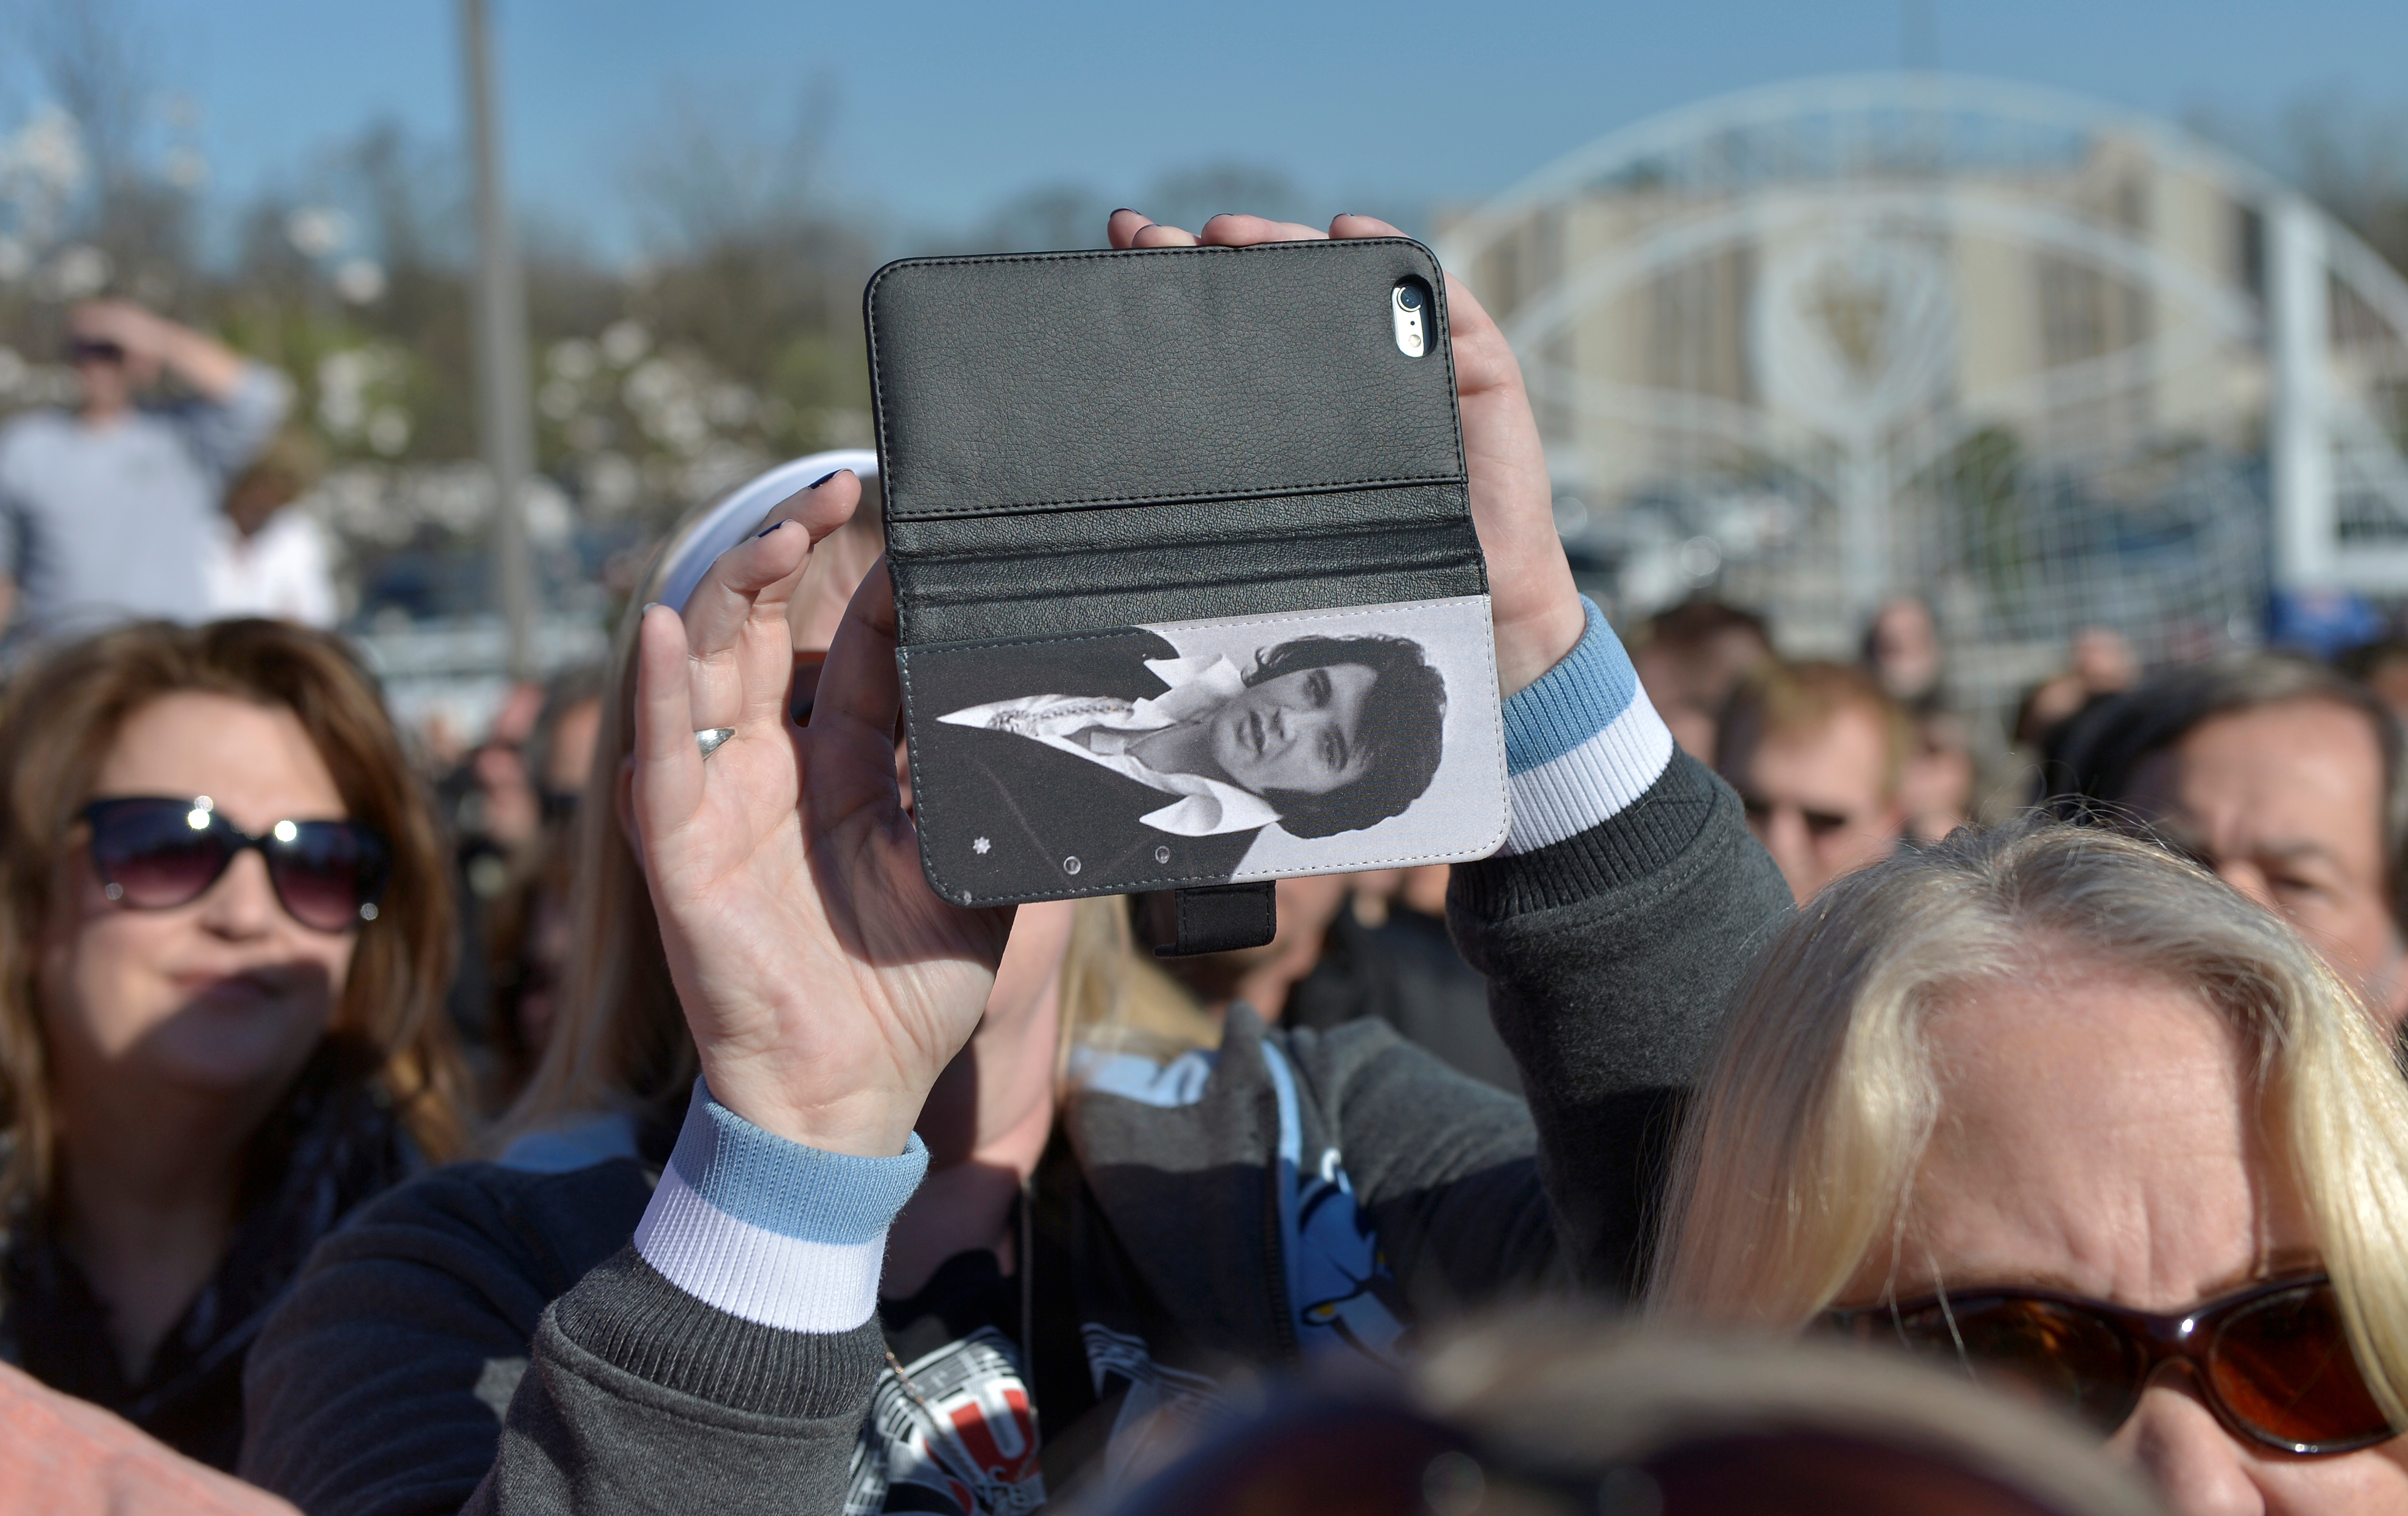 A woman takes a photo with her cell phone before entering the complex on March 2. Photo by Brandon Dill/Reuters